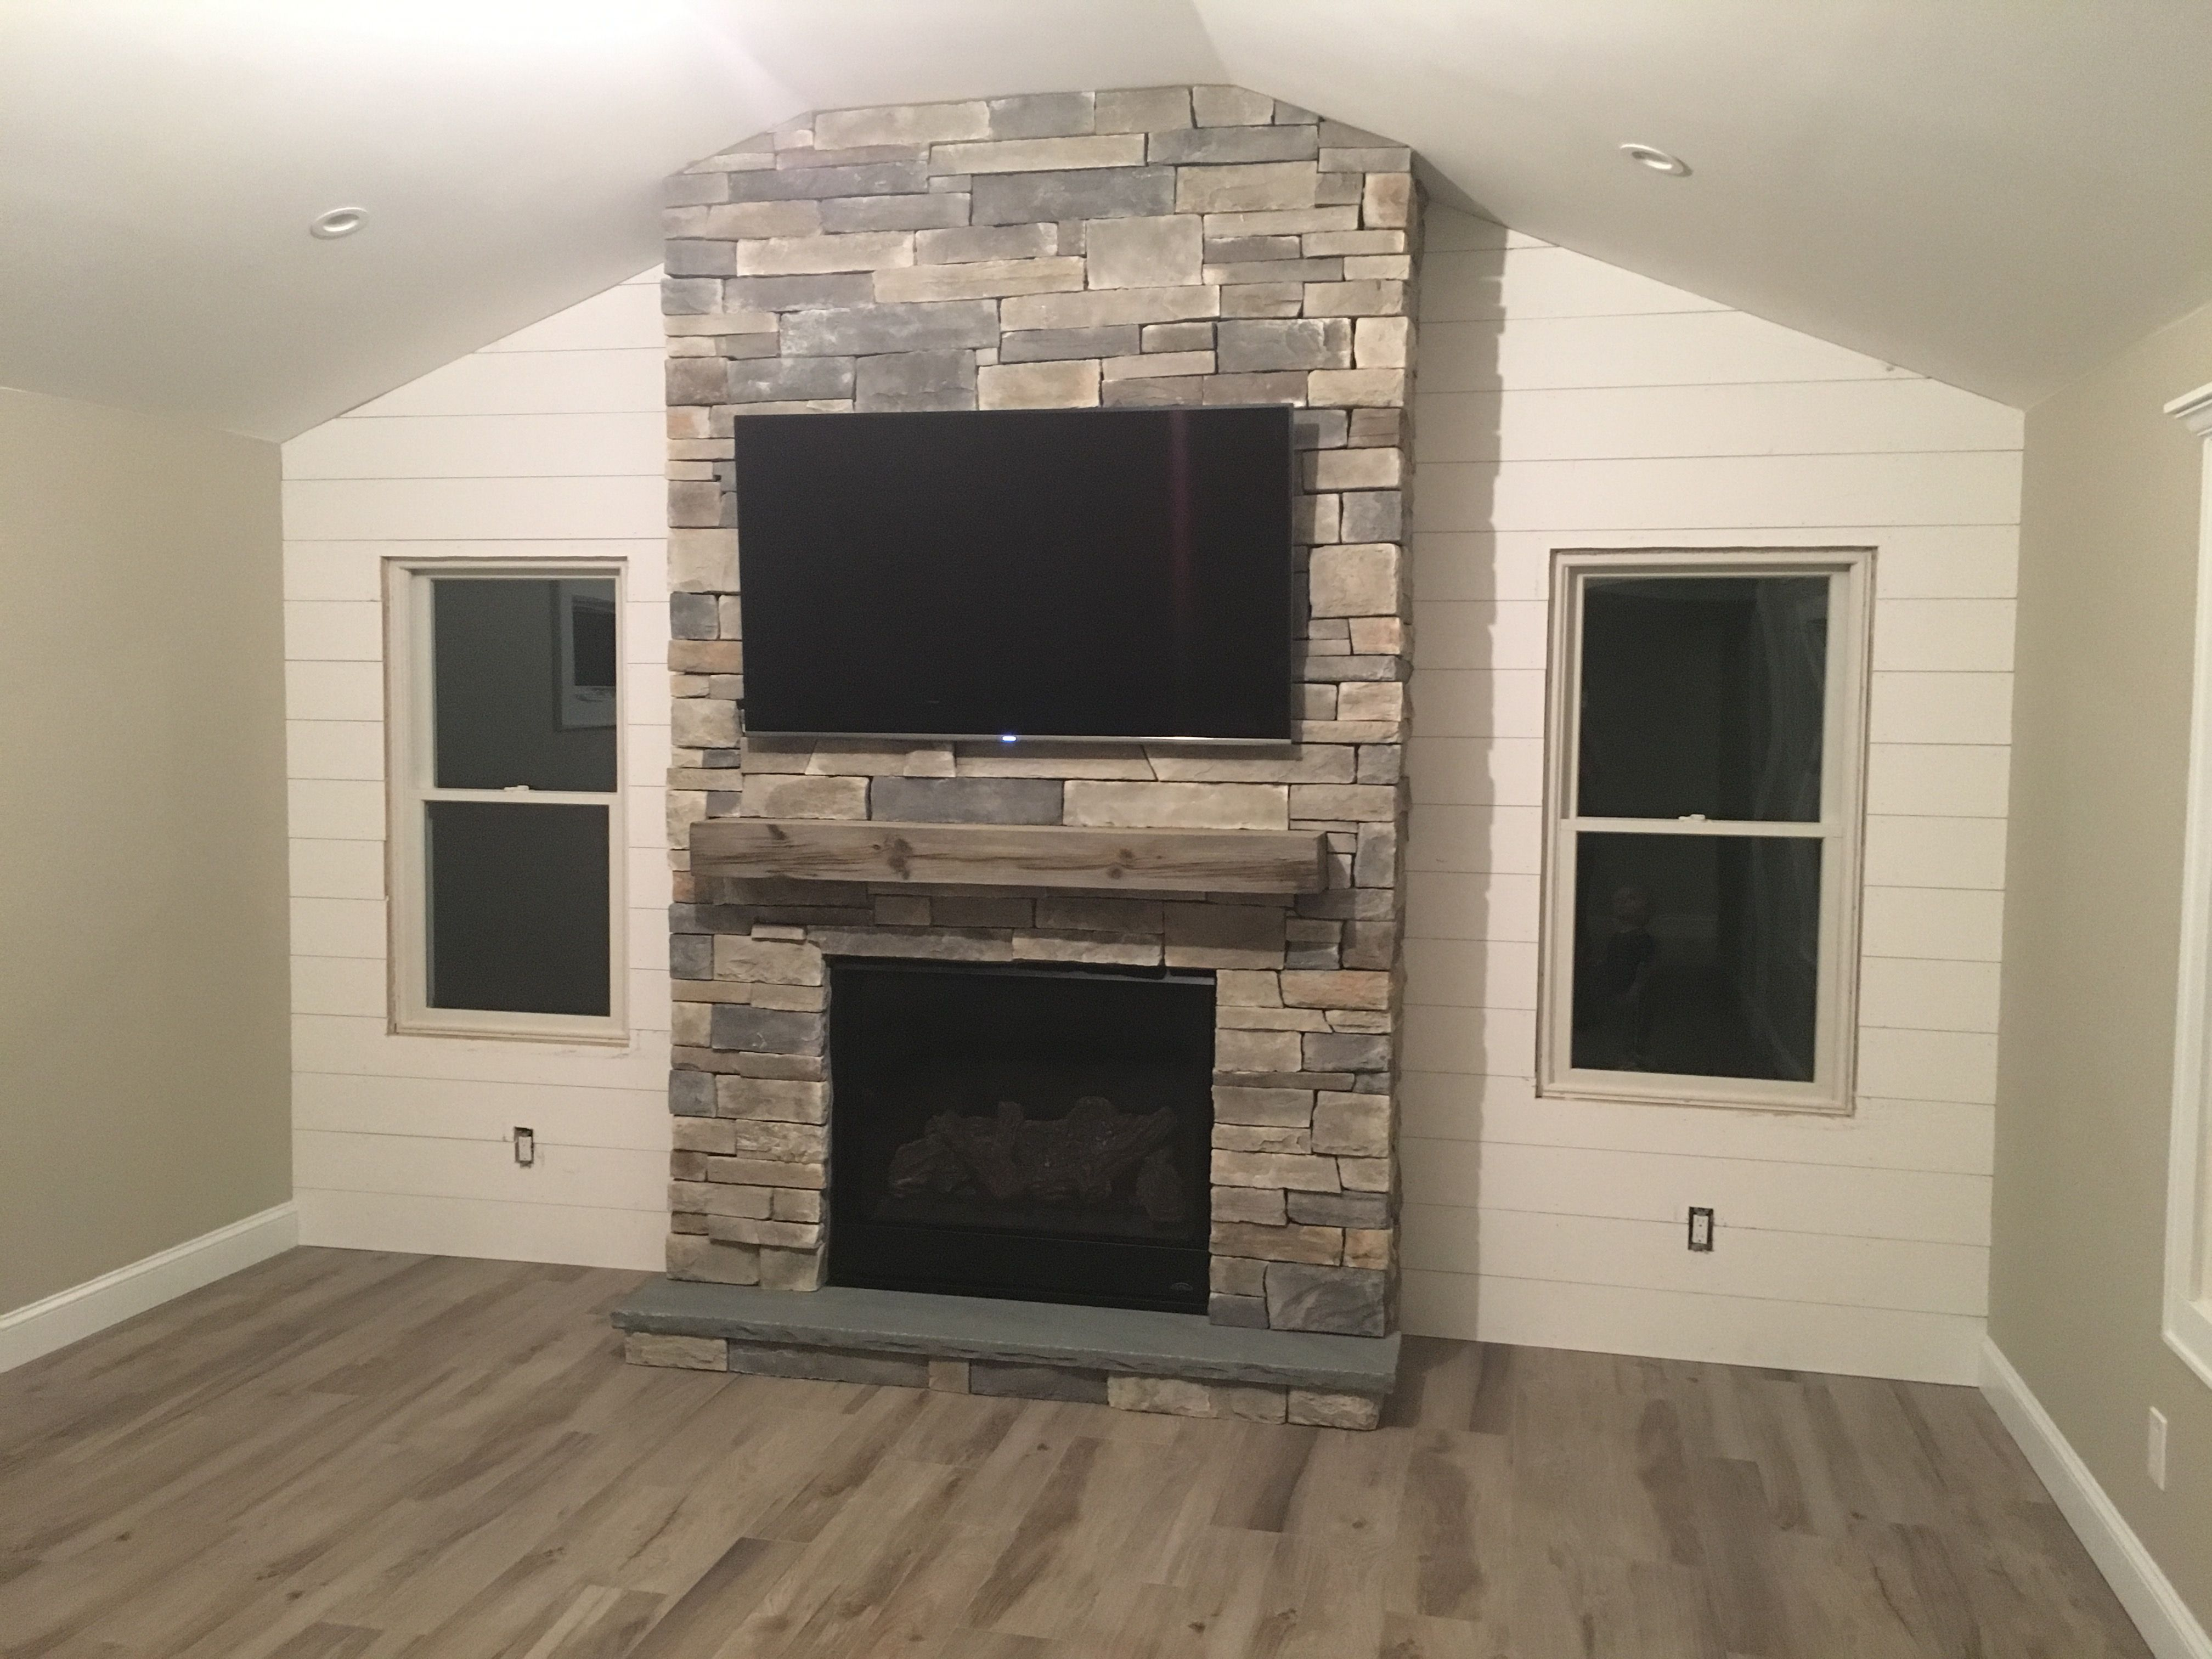 Fireplace With Magrahearth Mantel And Shiplap Wall